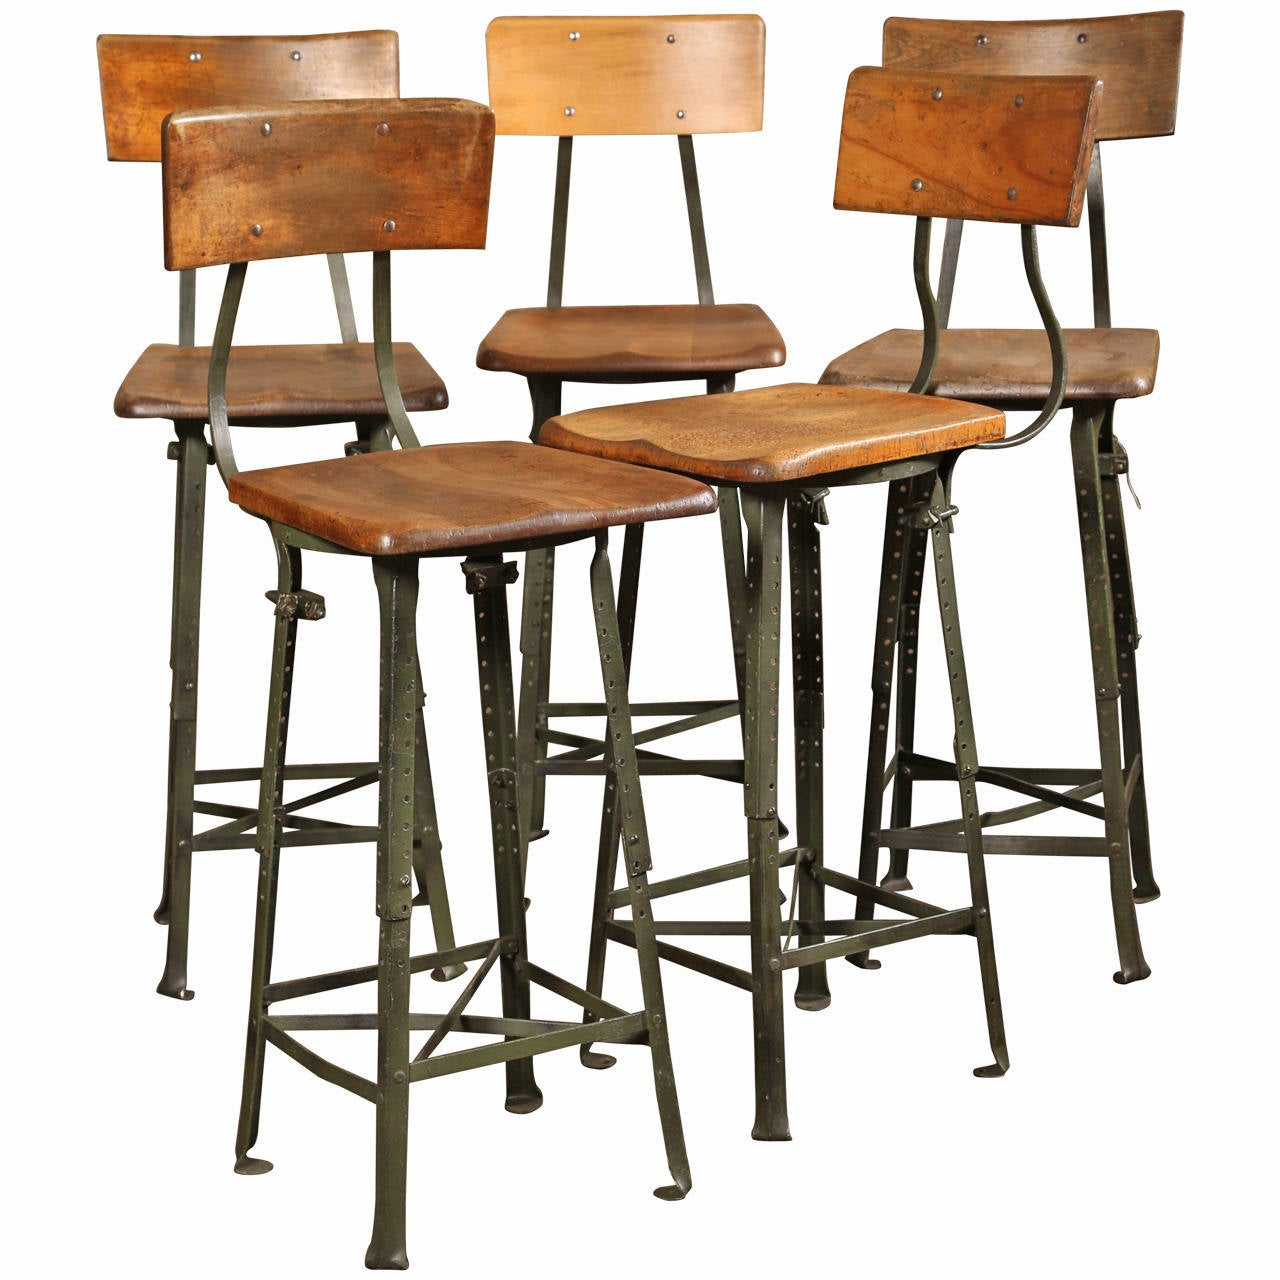 Vintage Industrial Adjustable Wood Metal Frame Stool At